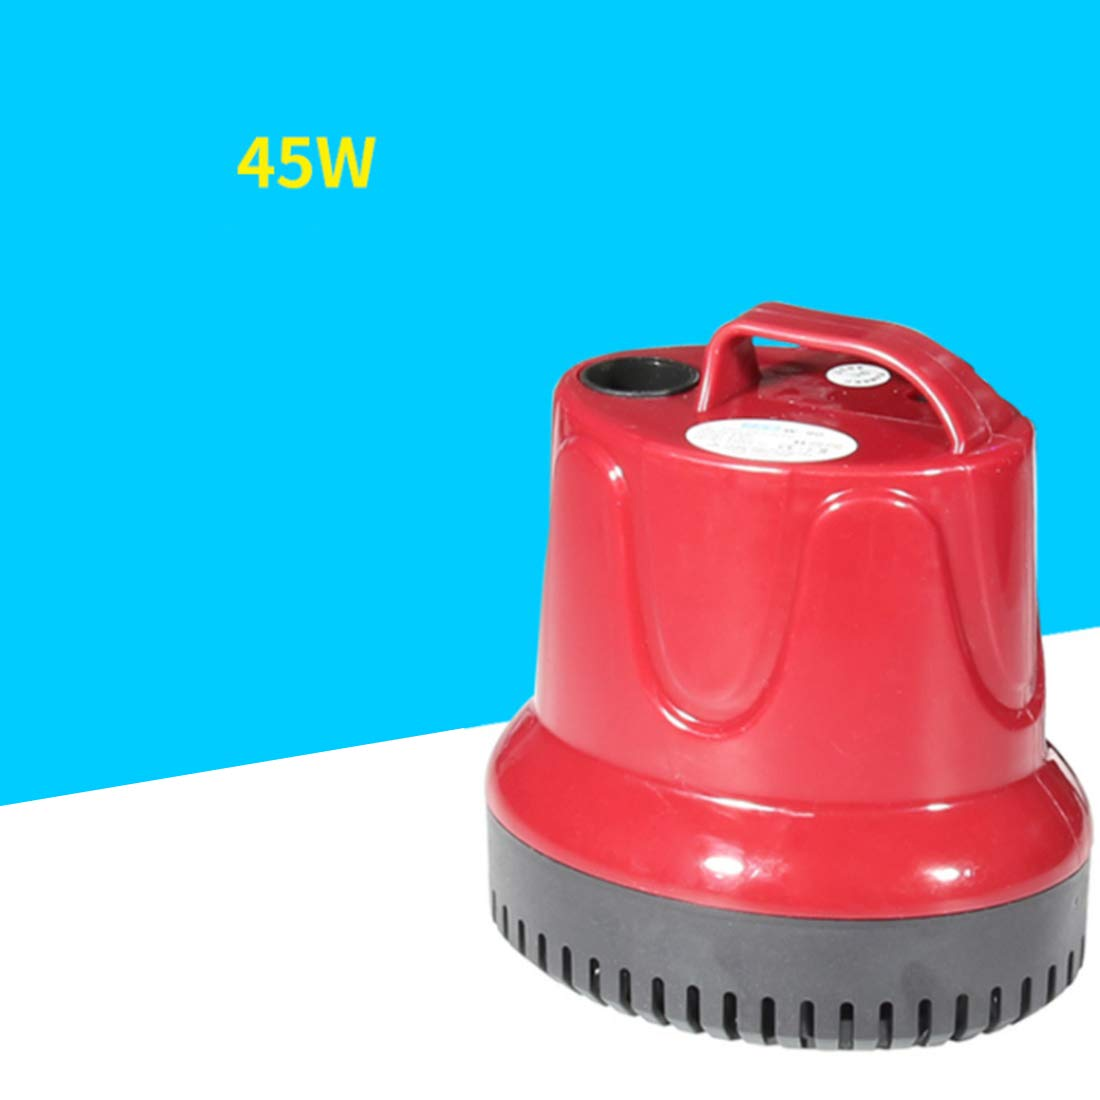 45W WEATLY Submersible Pump 600L-5000L Hr, Fountain Water Pump for Fish Tank, Hydroponics,Aquarium (Wattage   45W)